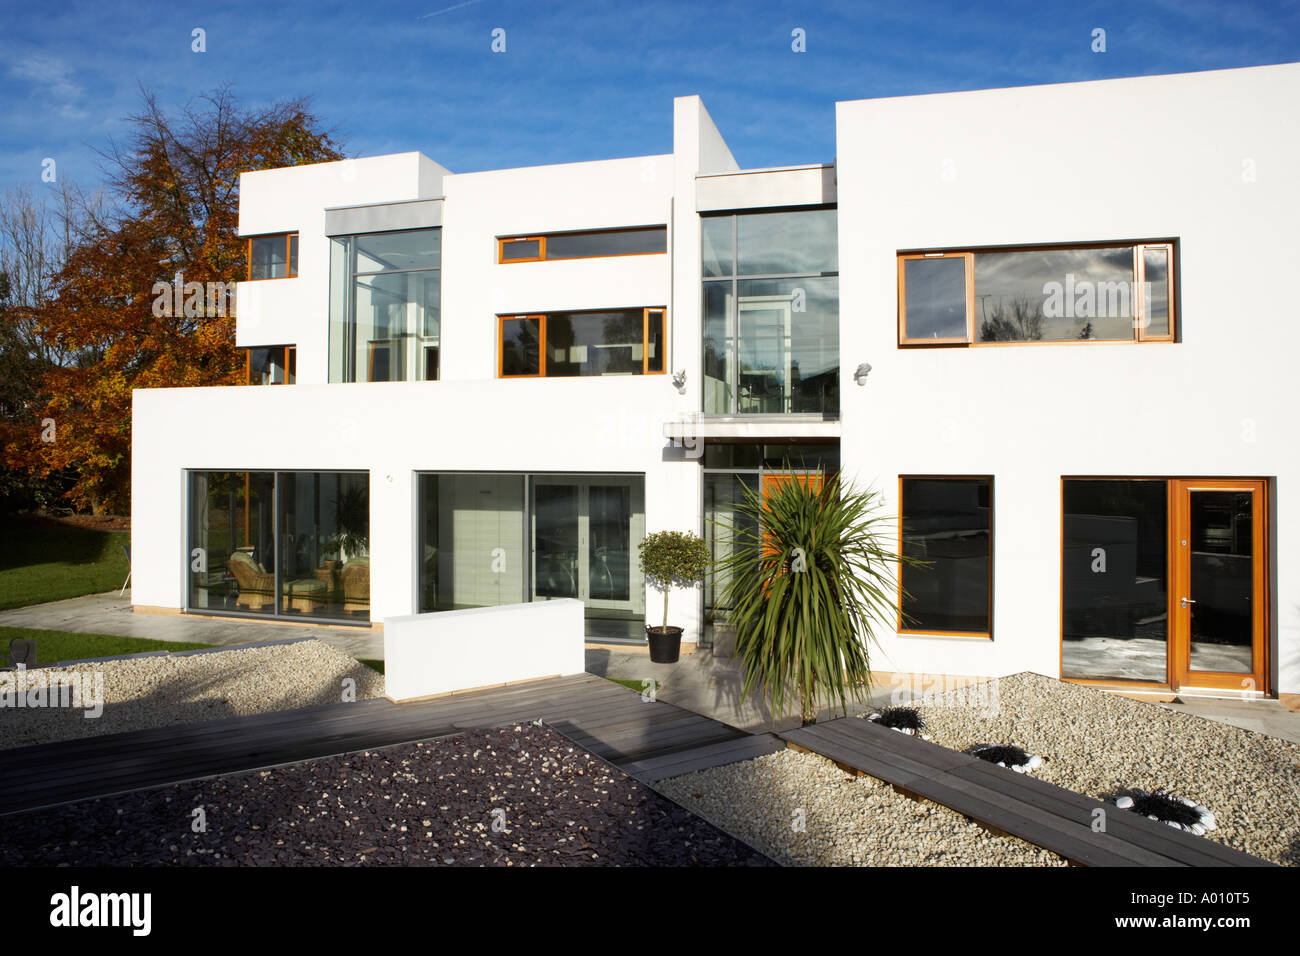 Patio Moderne Modern Art Deco Style House With White Gravel Garden And Large